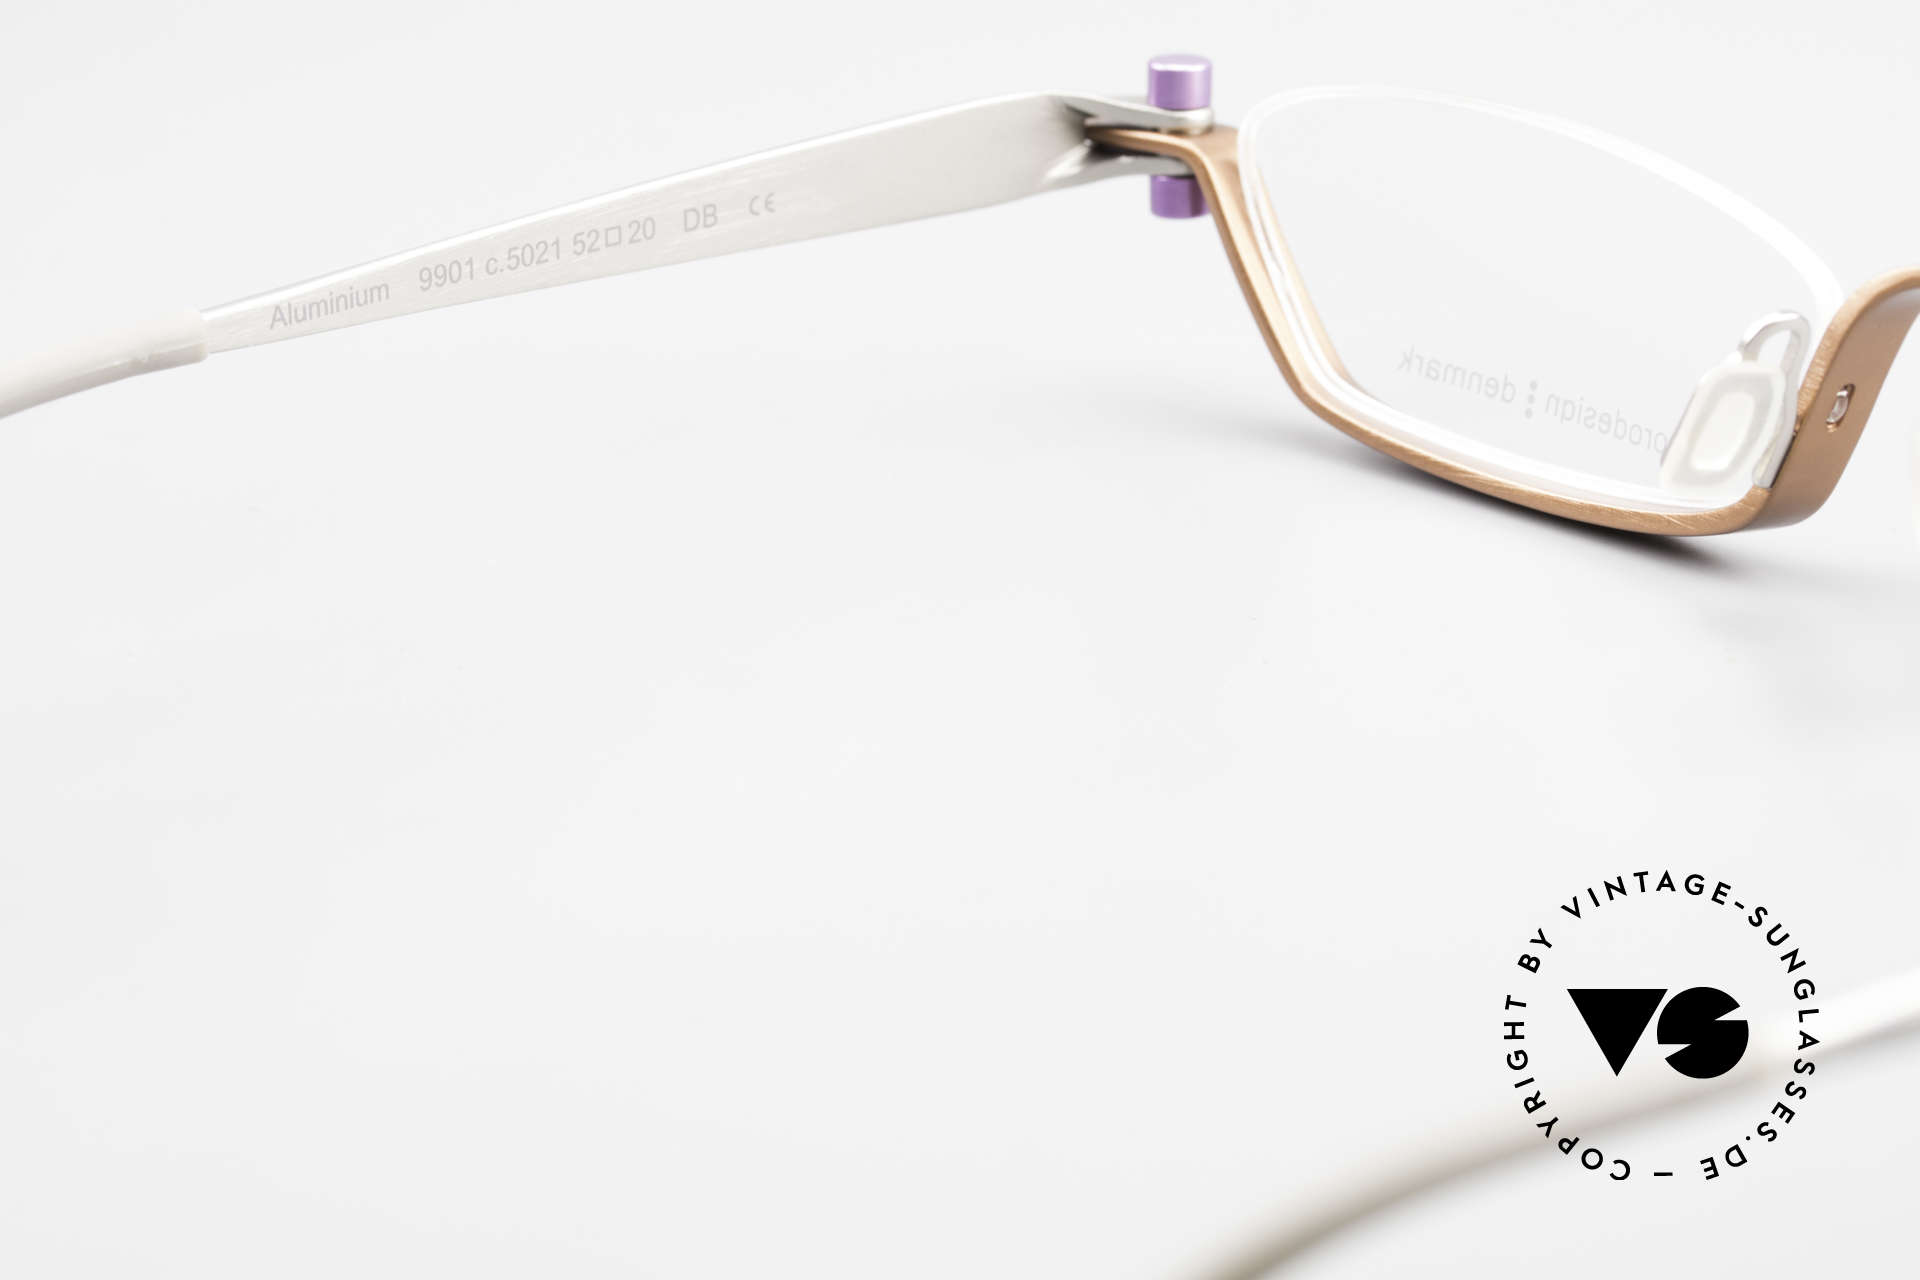 ProDesign 9901 Gail Spence Design Eyeglasses, with original clear DEMO lenses and Pro Design case, Made for Men and Women